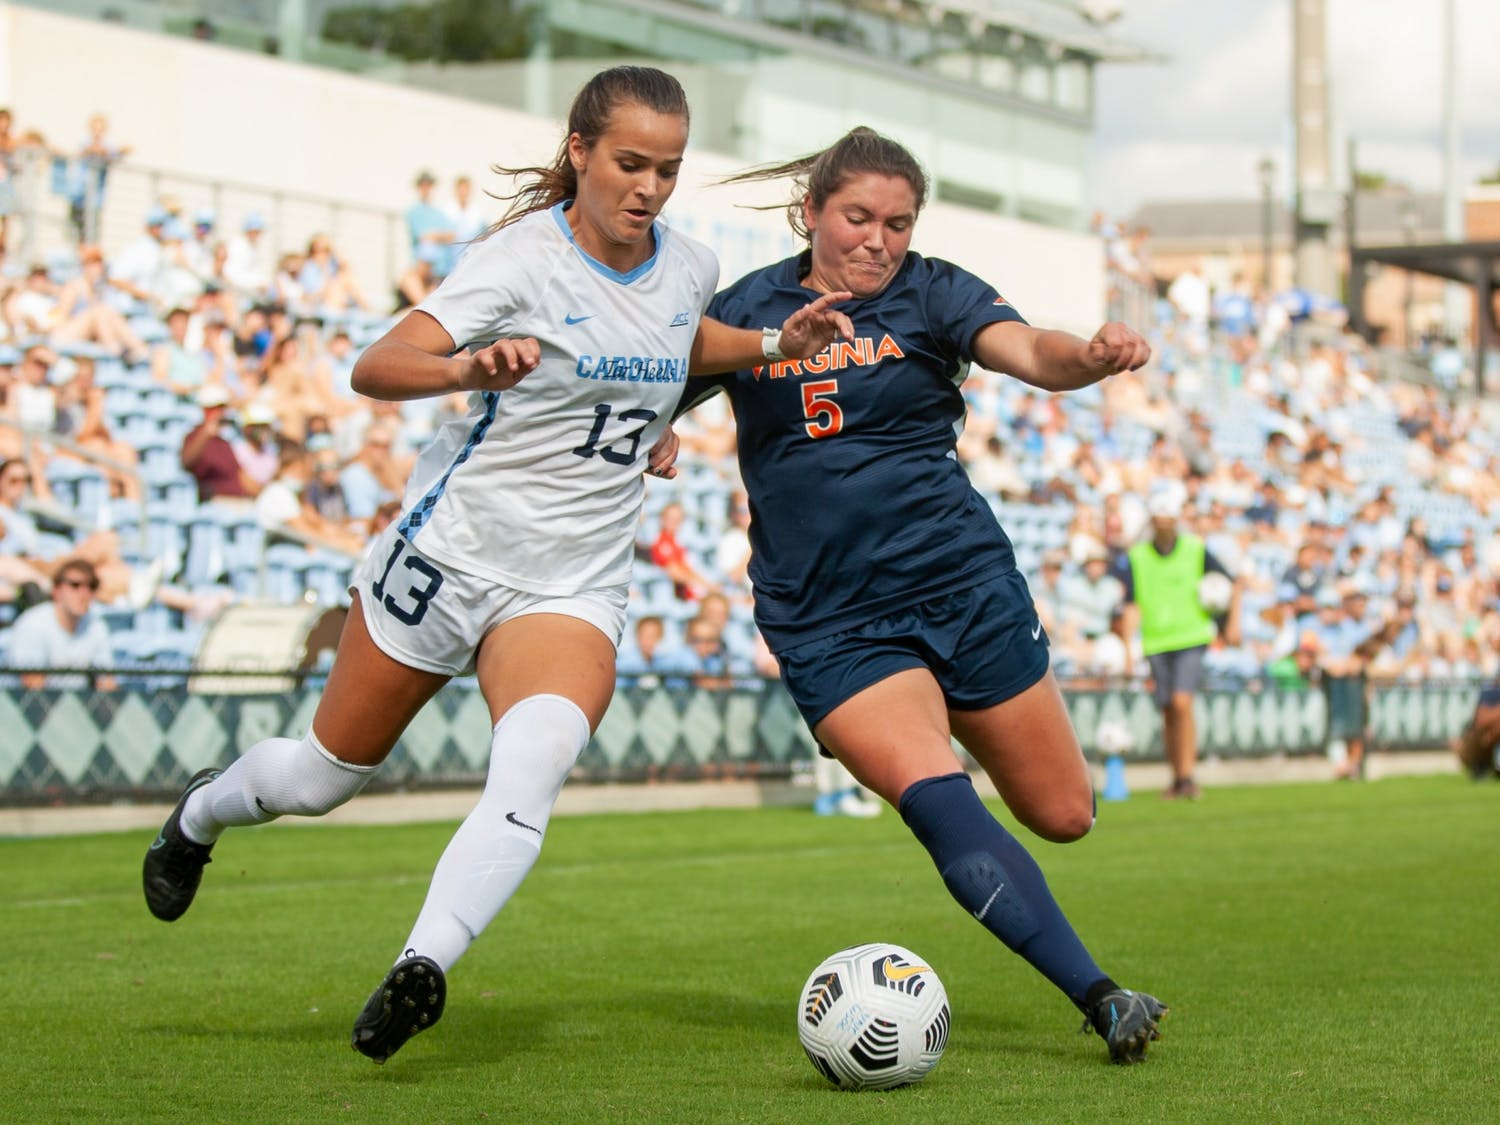 Junior forward Isabel Cox (13) runs with the ball at the game against Virginia on Oct. 3 at Dorrance Field. UNC tied 0-0.